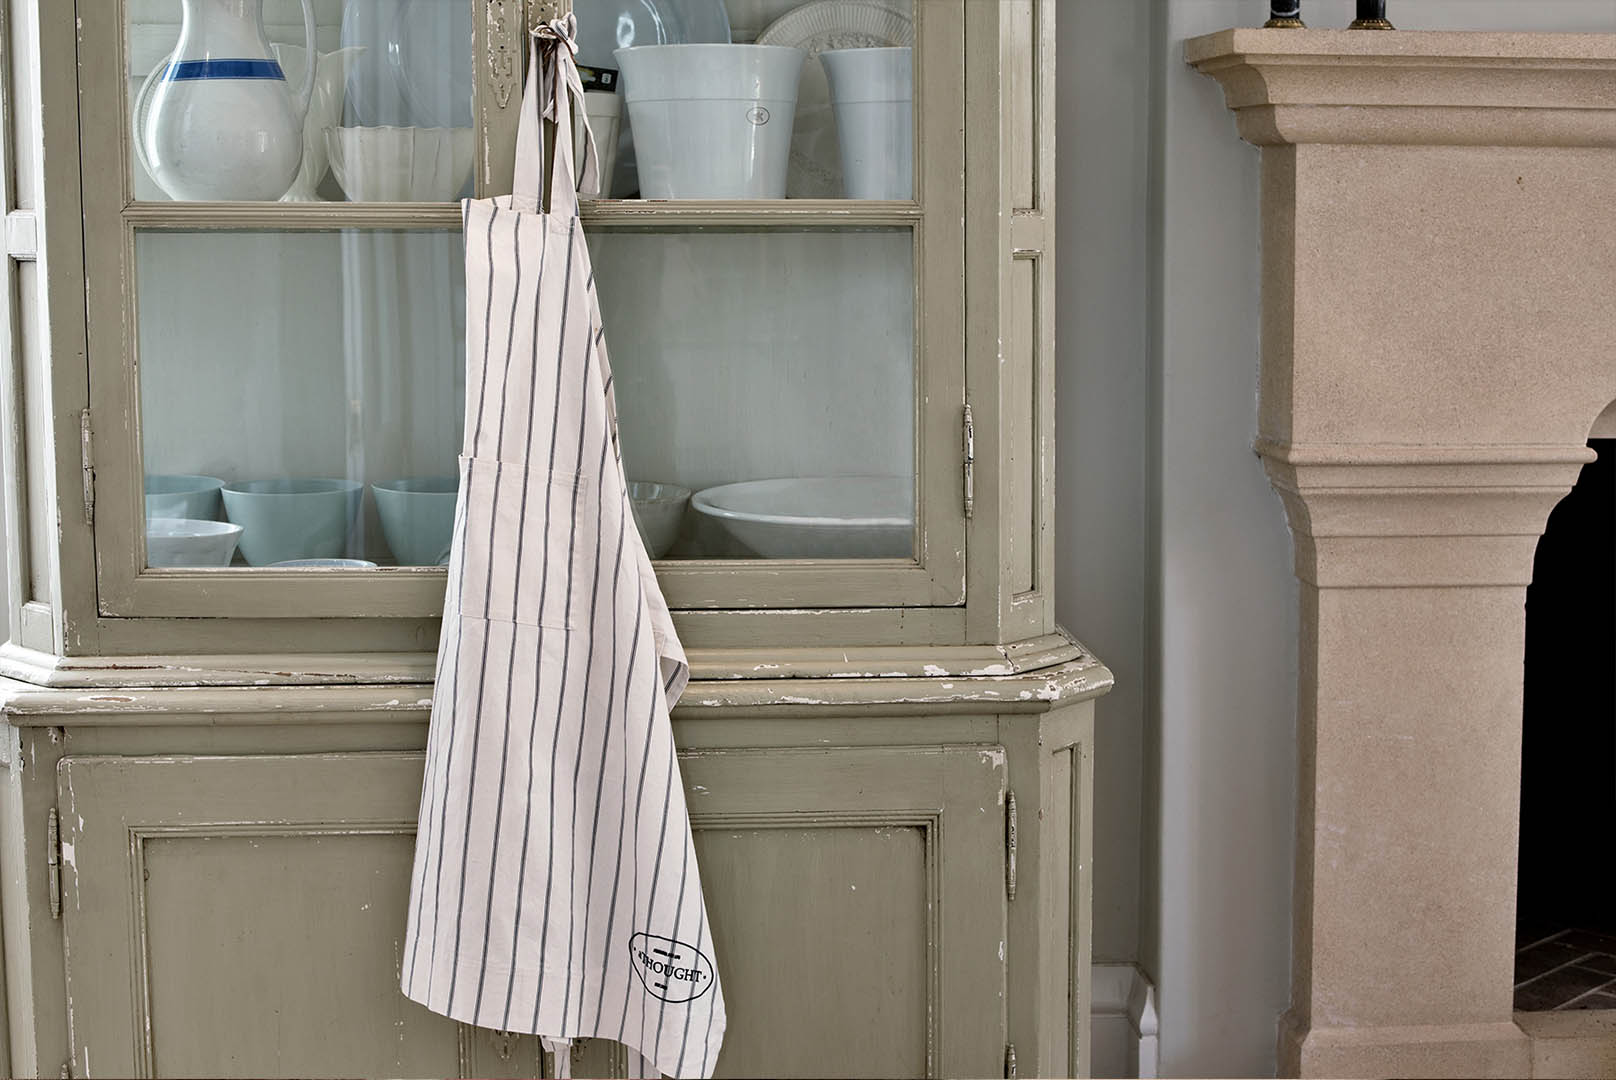 White apron london - This Generous Wrap Around Apron Was Made At Out Of The Box A Centre That Teaches And Upgrades Skills In An Impoverished Urban Area In Johannesburg